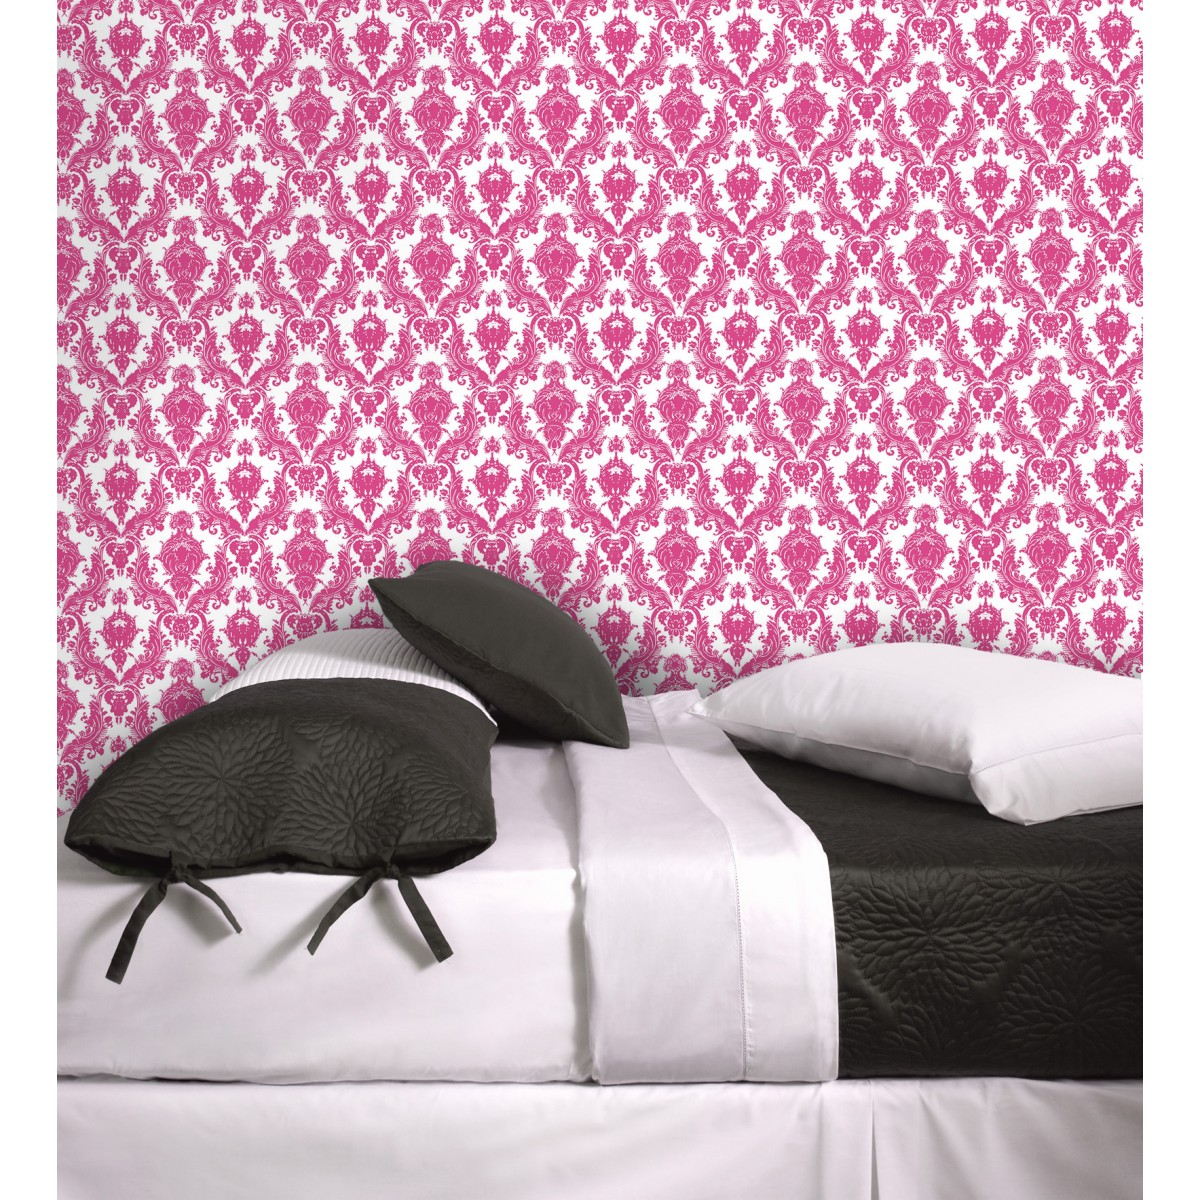 chic White and Fuschia tempaper wallpaper plus cute bedding for bedroom decor ideas